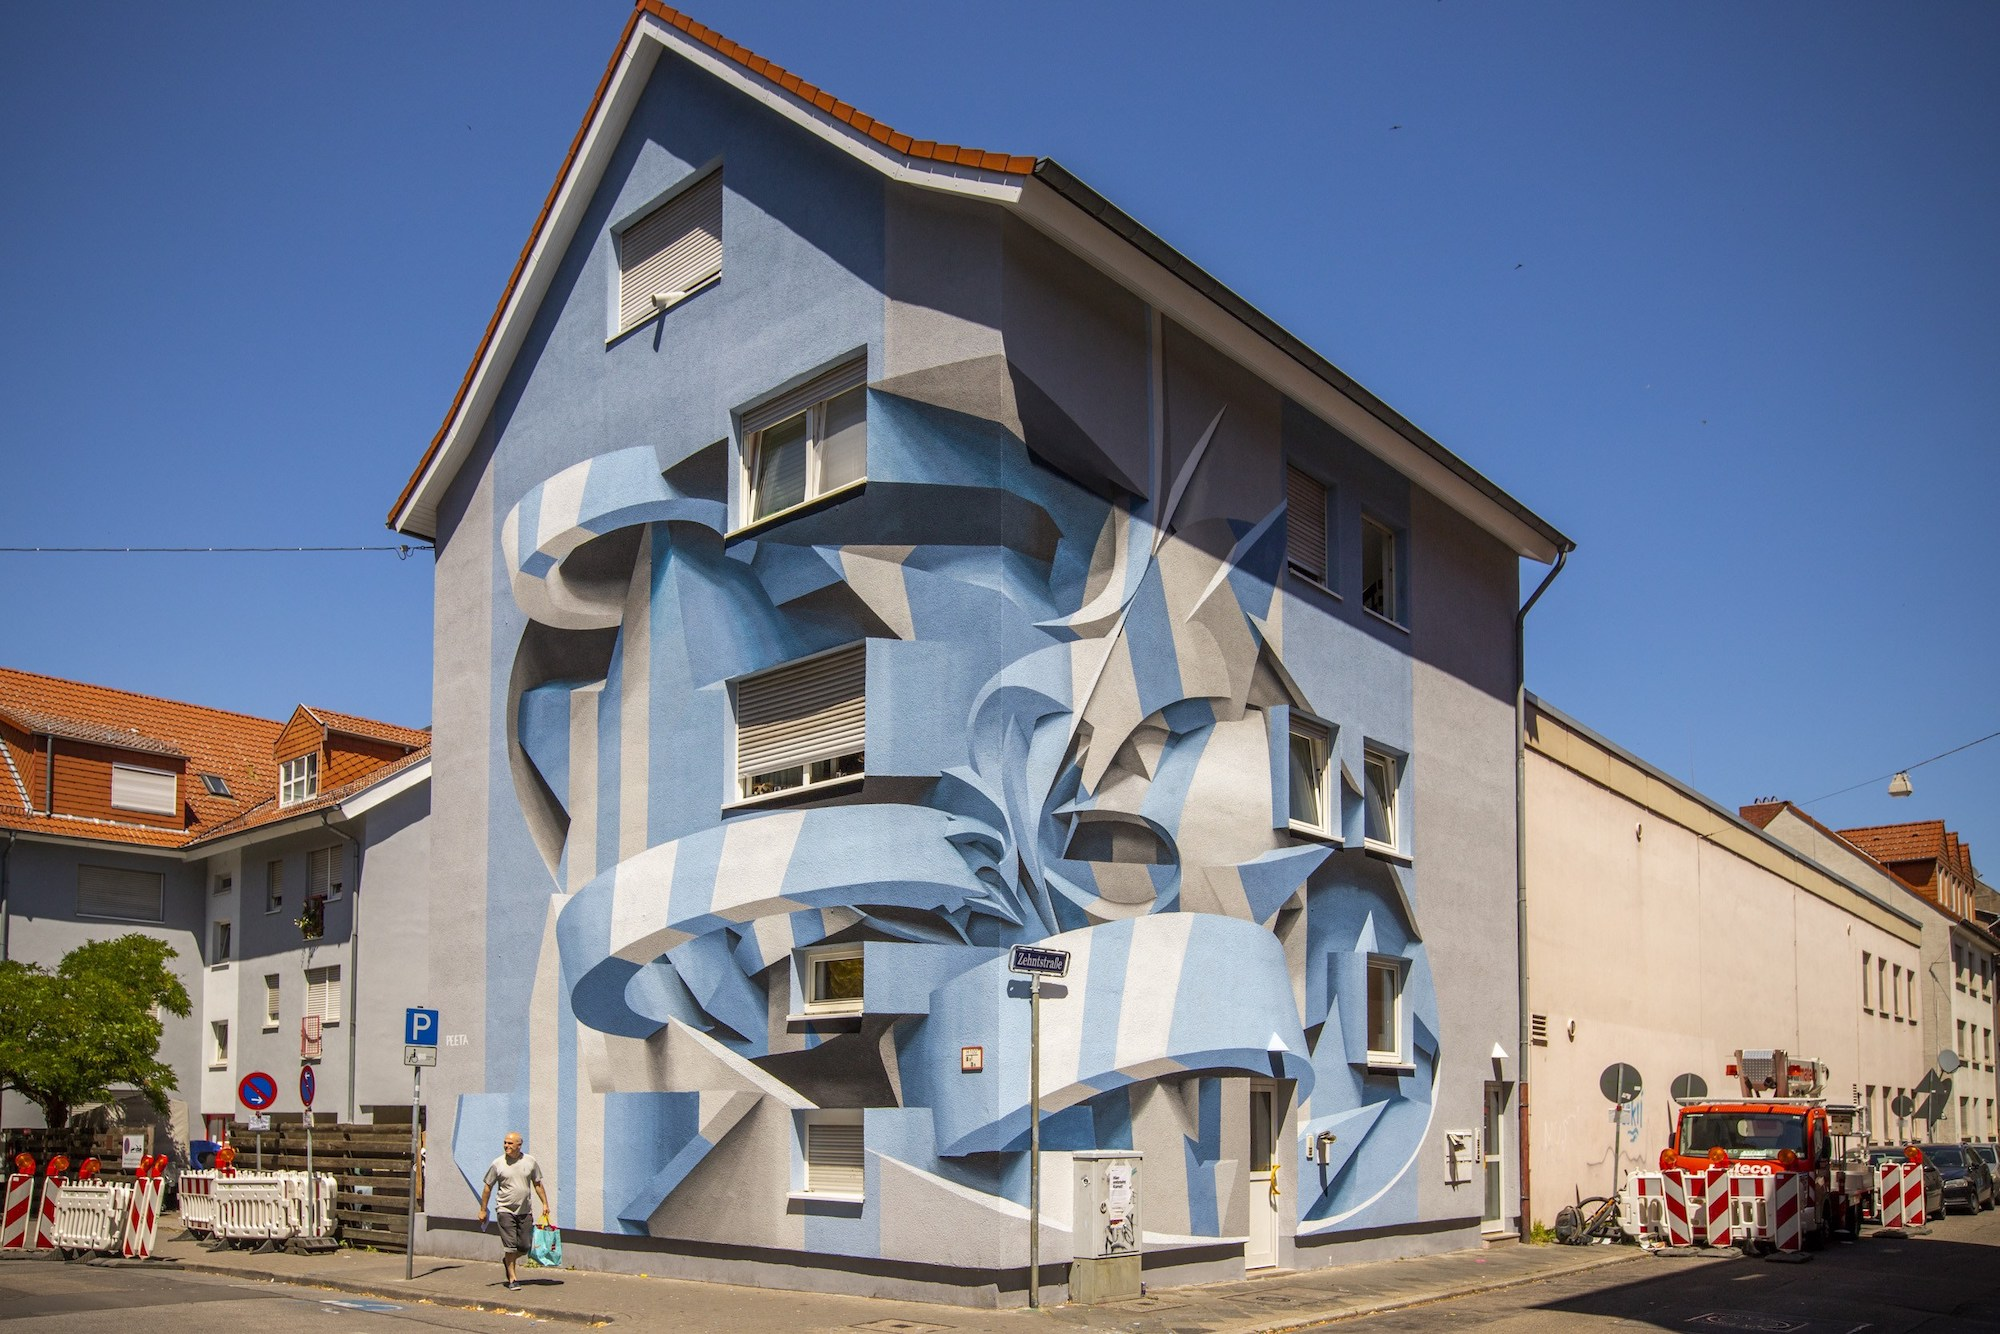 Italian Artist Peeta Blends Graffiti and Abstract Forms Into Optical Illusion Murals